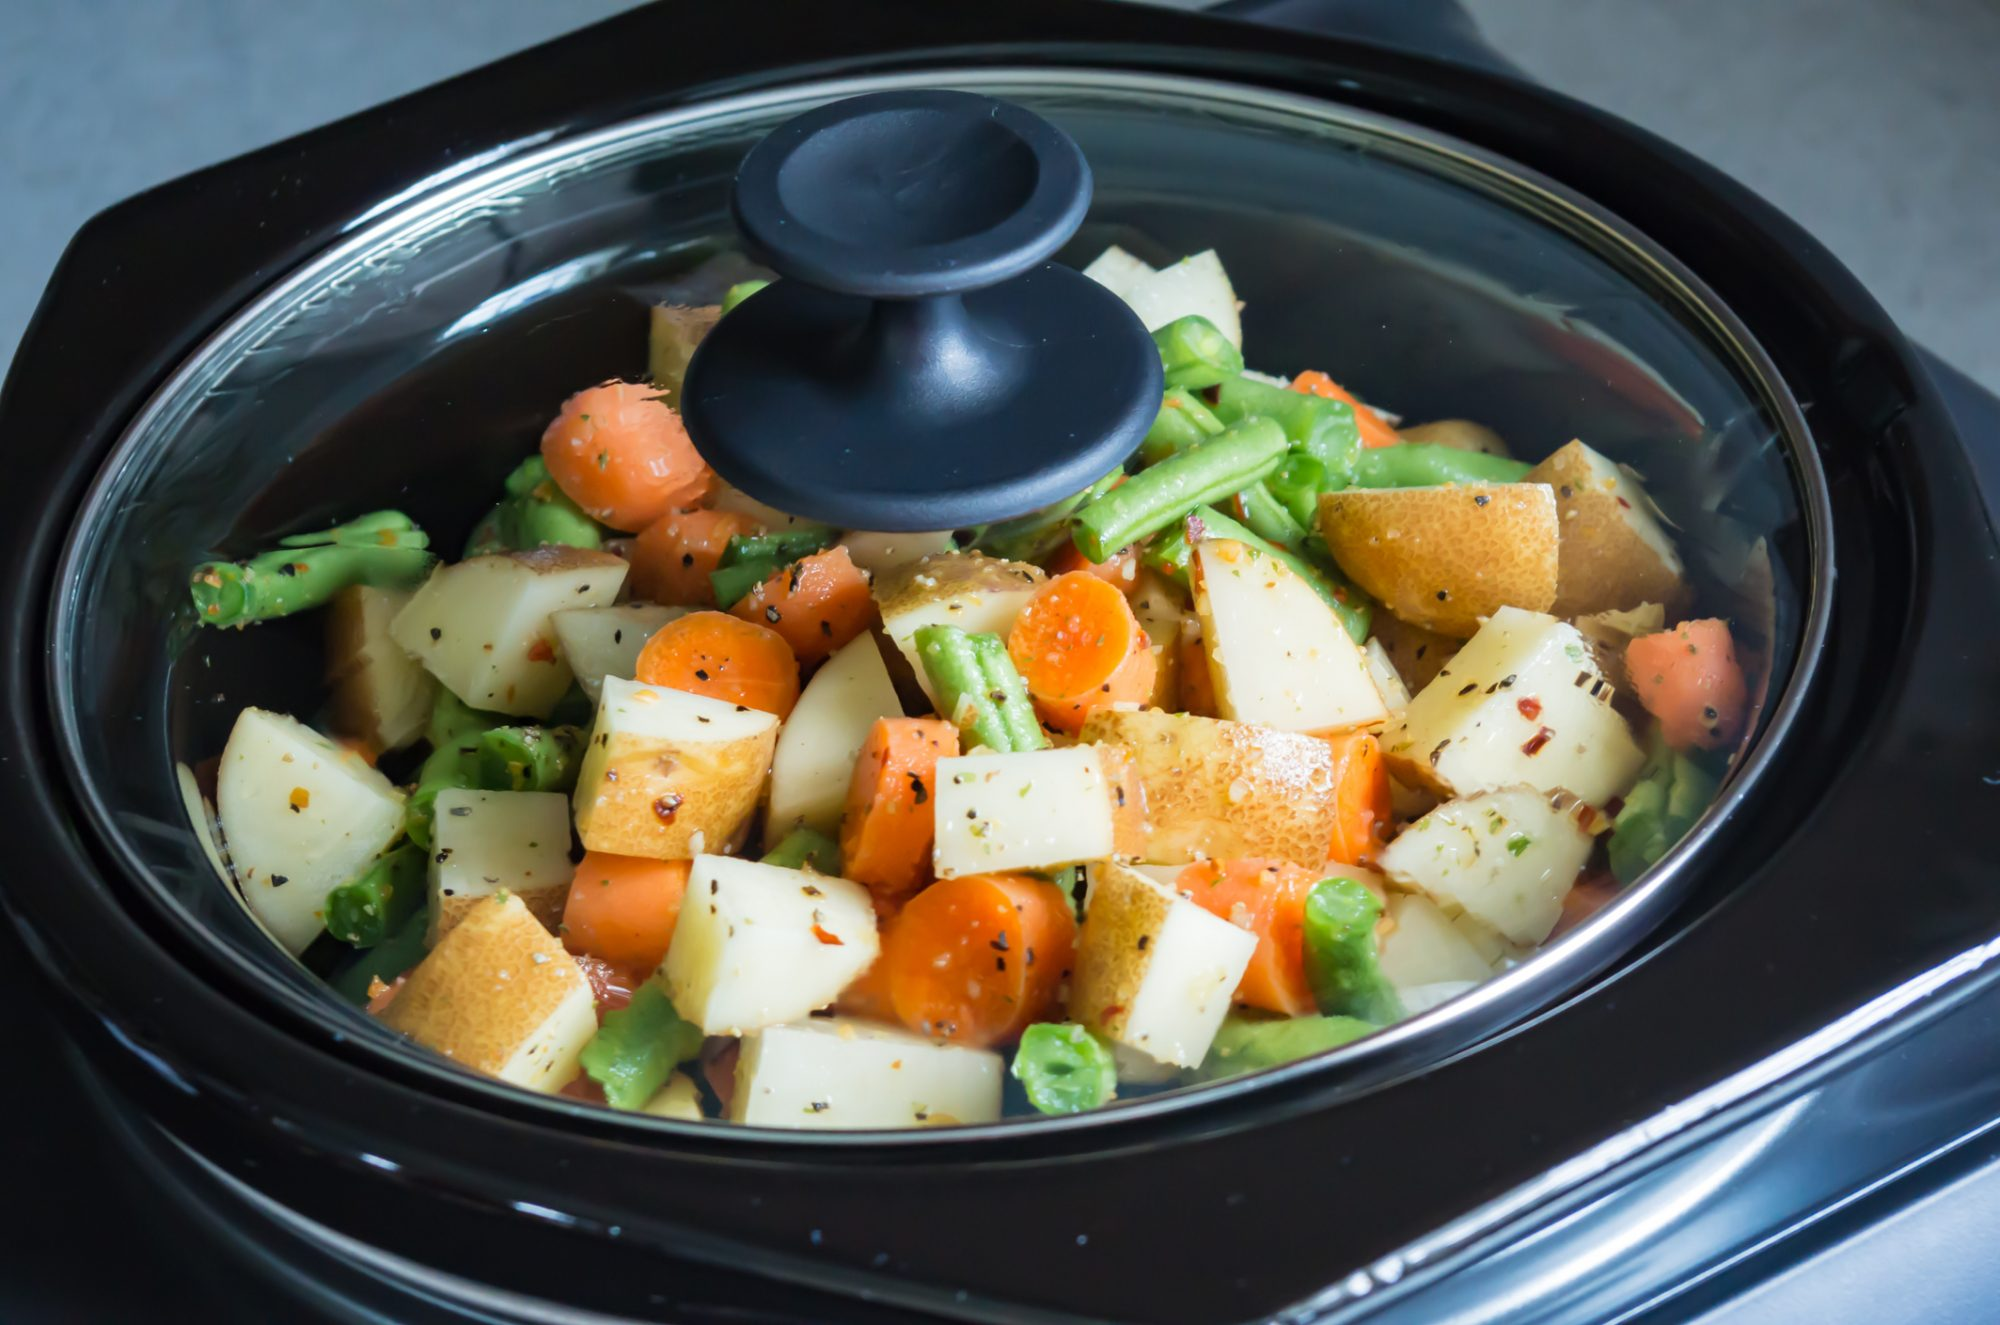 Slow Cooker Vegetables - Getty